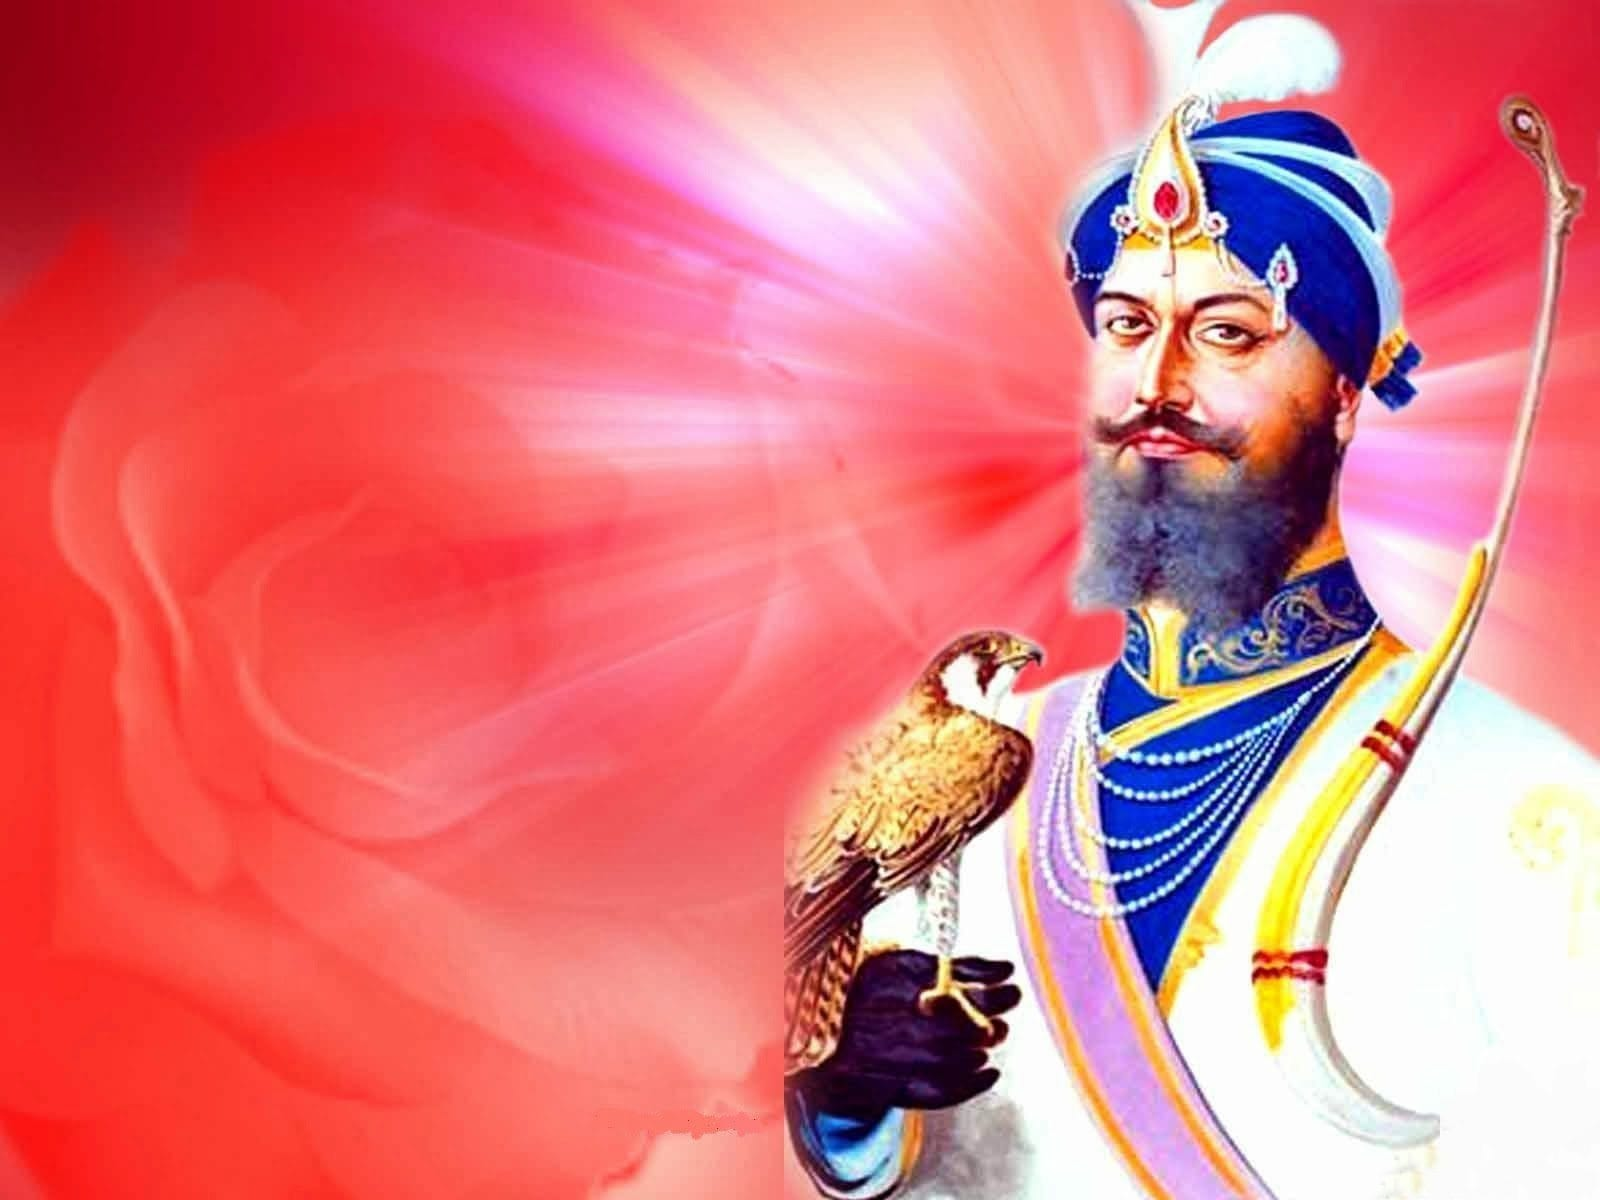 Image-Og-Guru-Gobind-Singh-Ji-With-Eagle